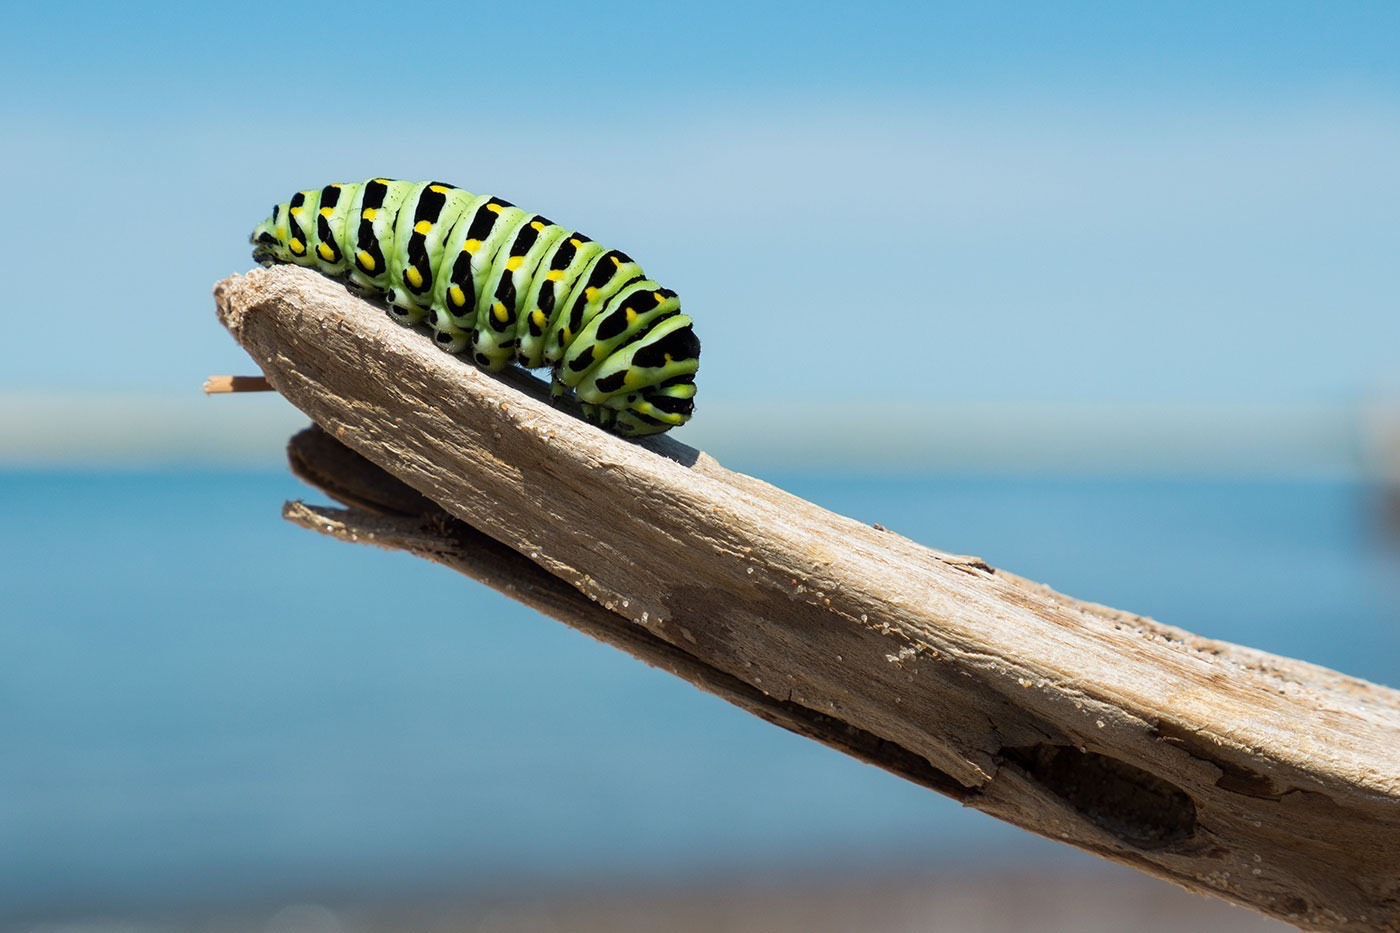 Green, yellow, and black caterpillar crawling on wood